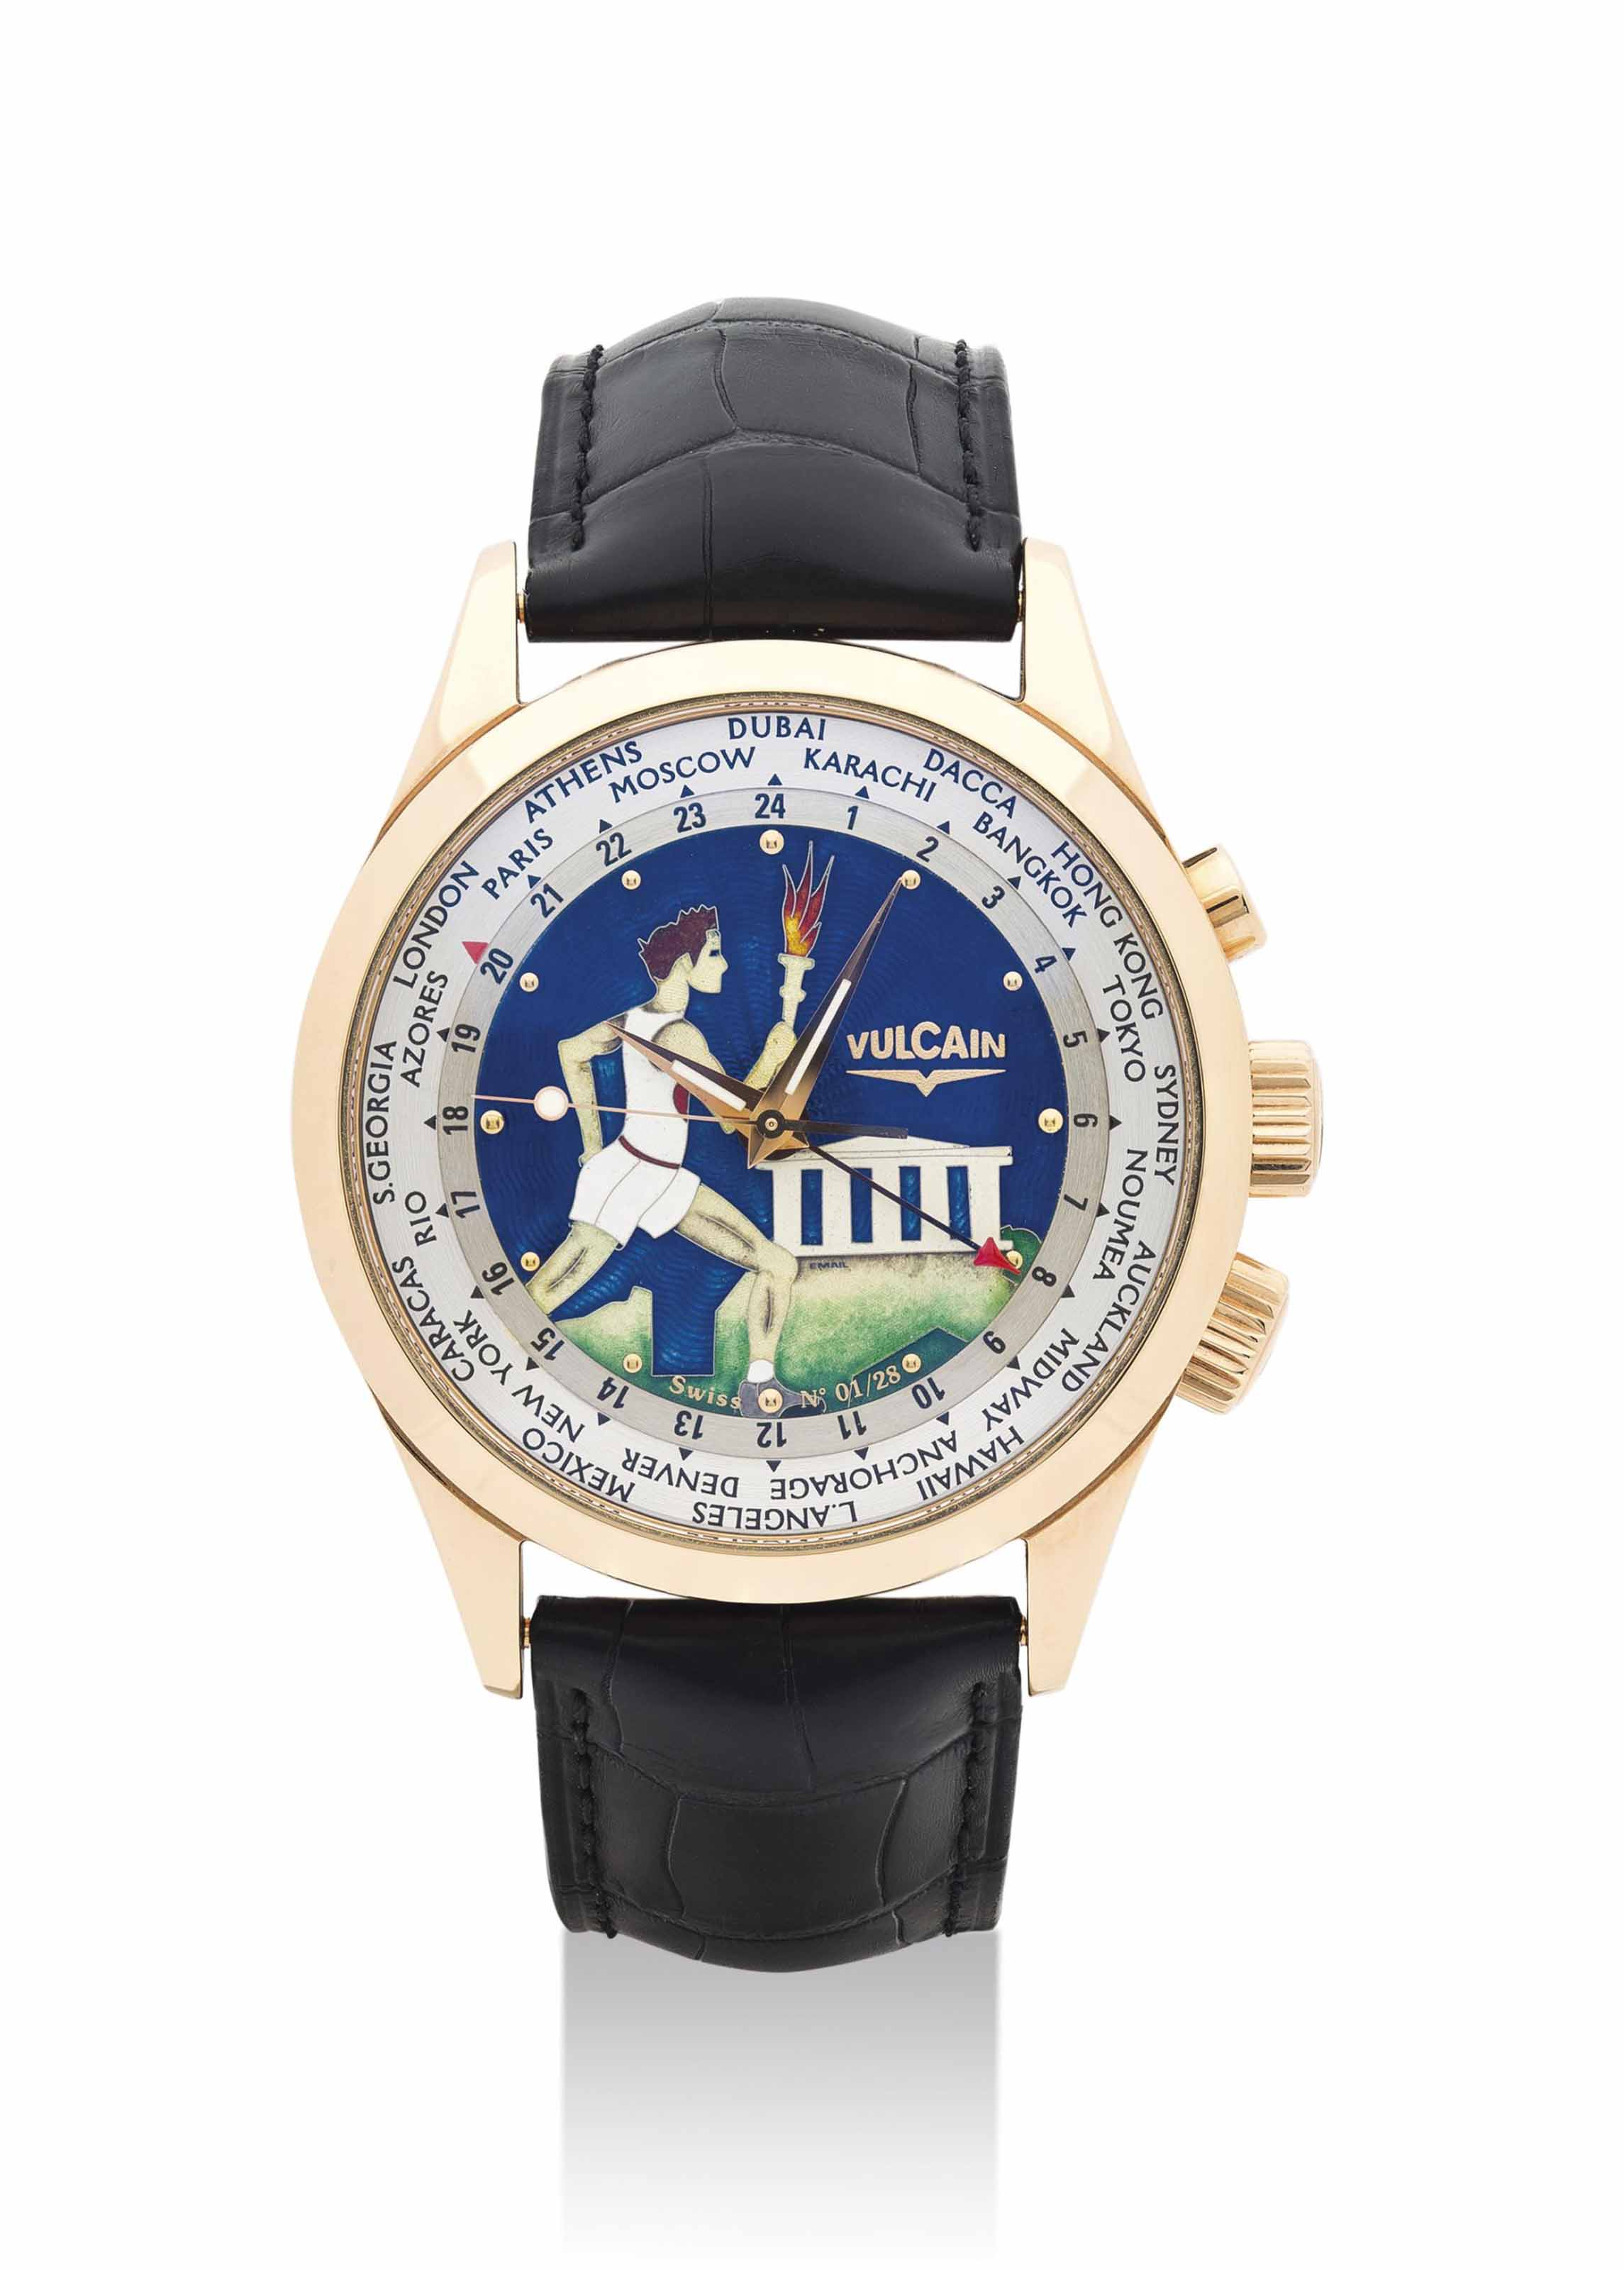 VULCAIN. A FINE 18K PINK GOLD LIMITED EDITION WORLTIME WRISTWATCH WITH SWEEP CENTRE SECONDS, ALARM AND CLOISONNÉ ENAMEL DIAL